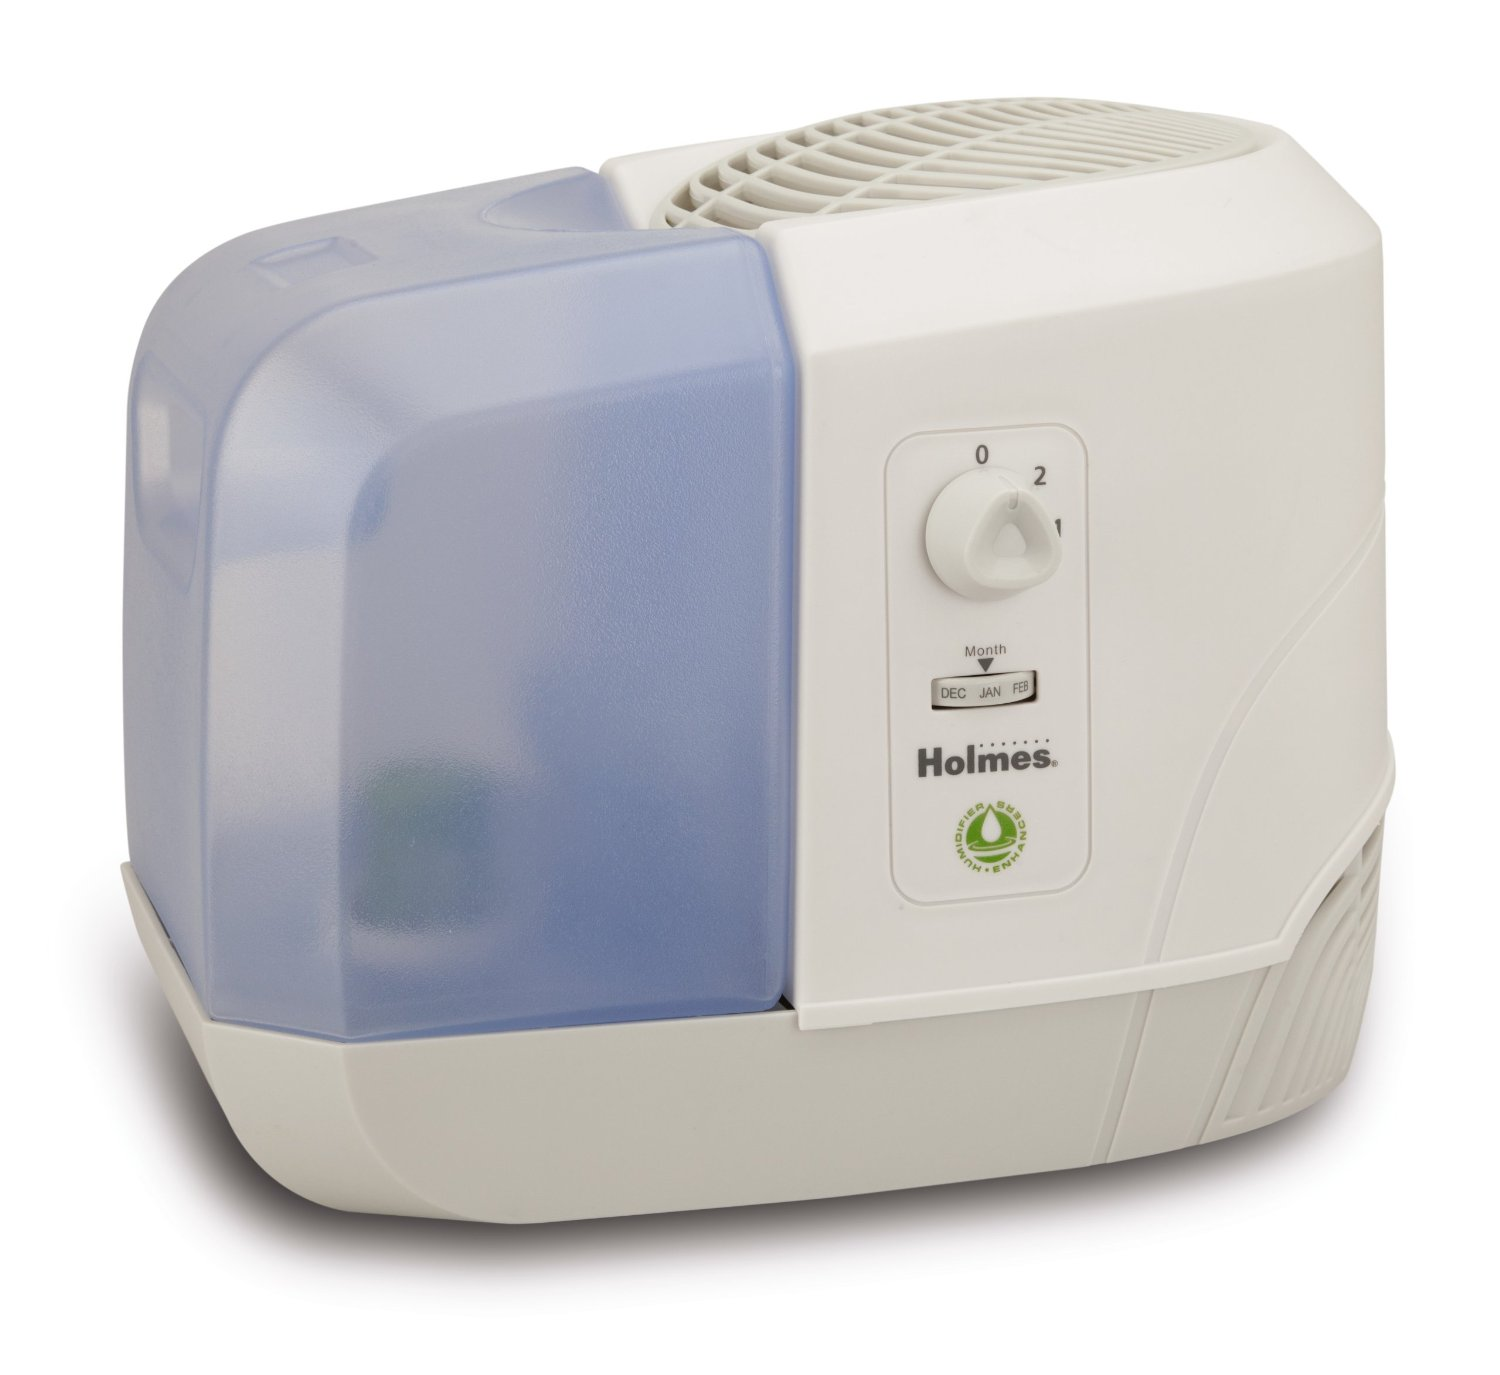 Holmes Humidifier Reviews Ratings Consumer Reports 2015 #677144